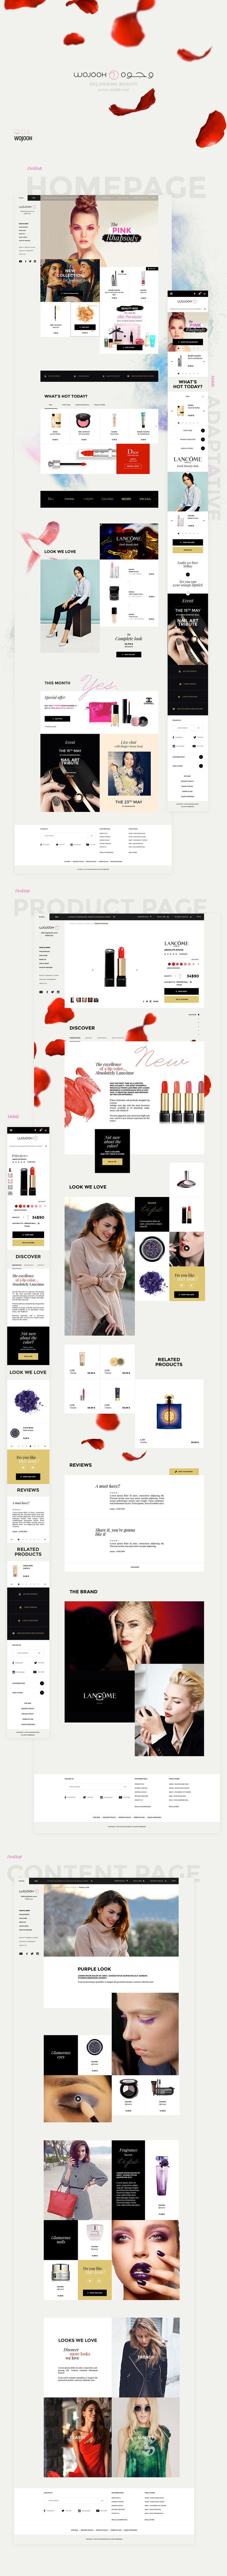 Wojooh : Delivering beauty across middle east